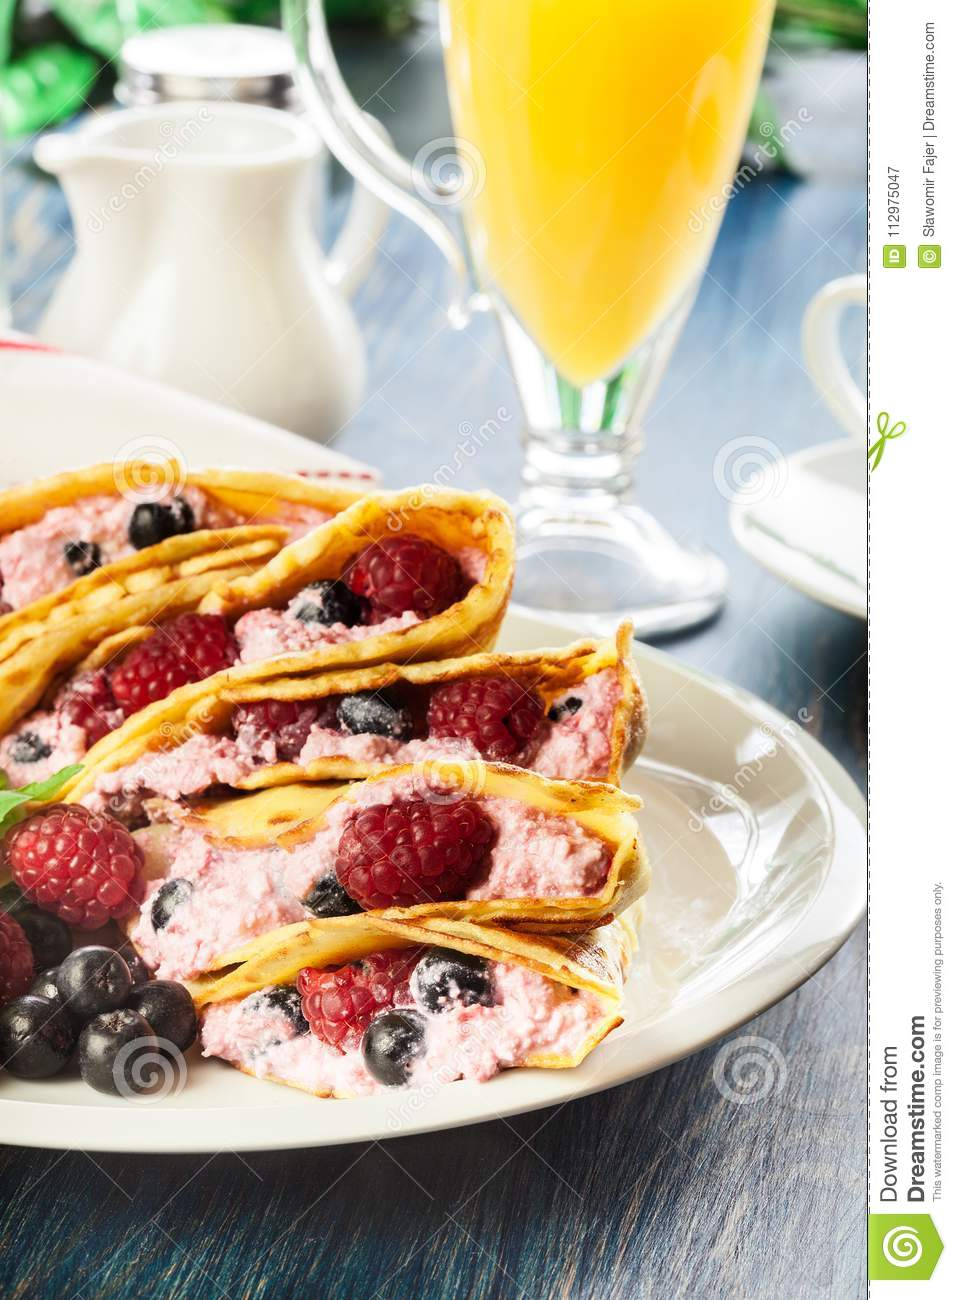 Delicious tasty homemade traditional crepes